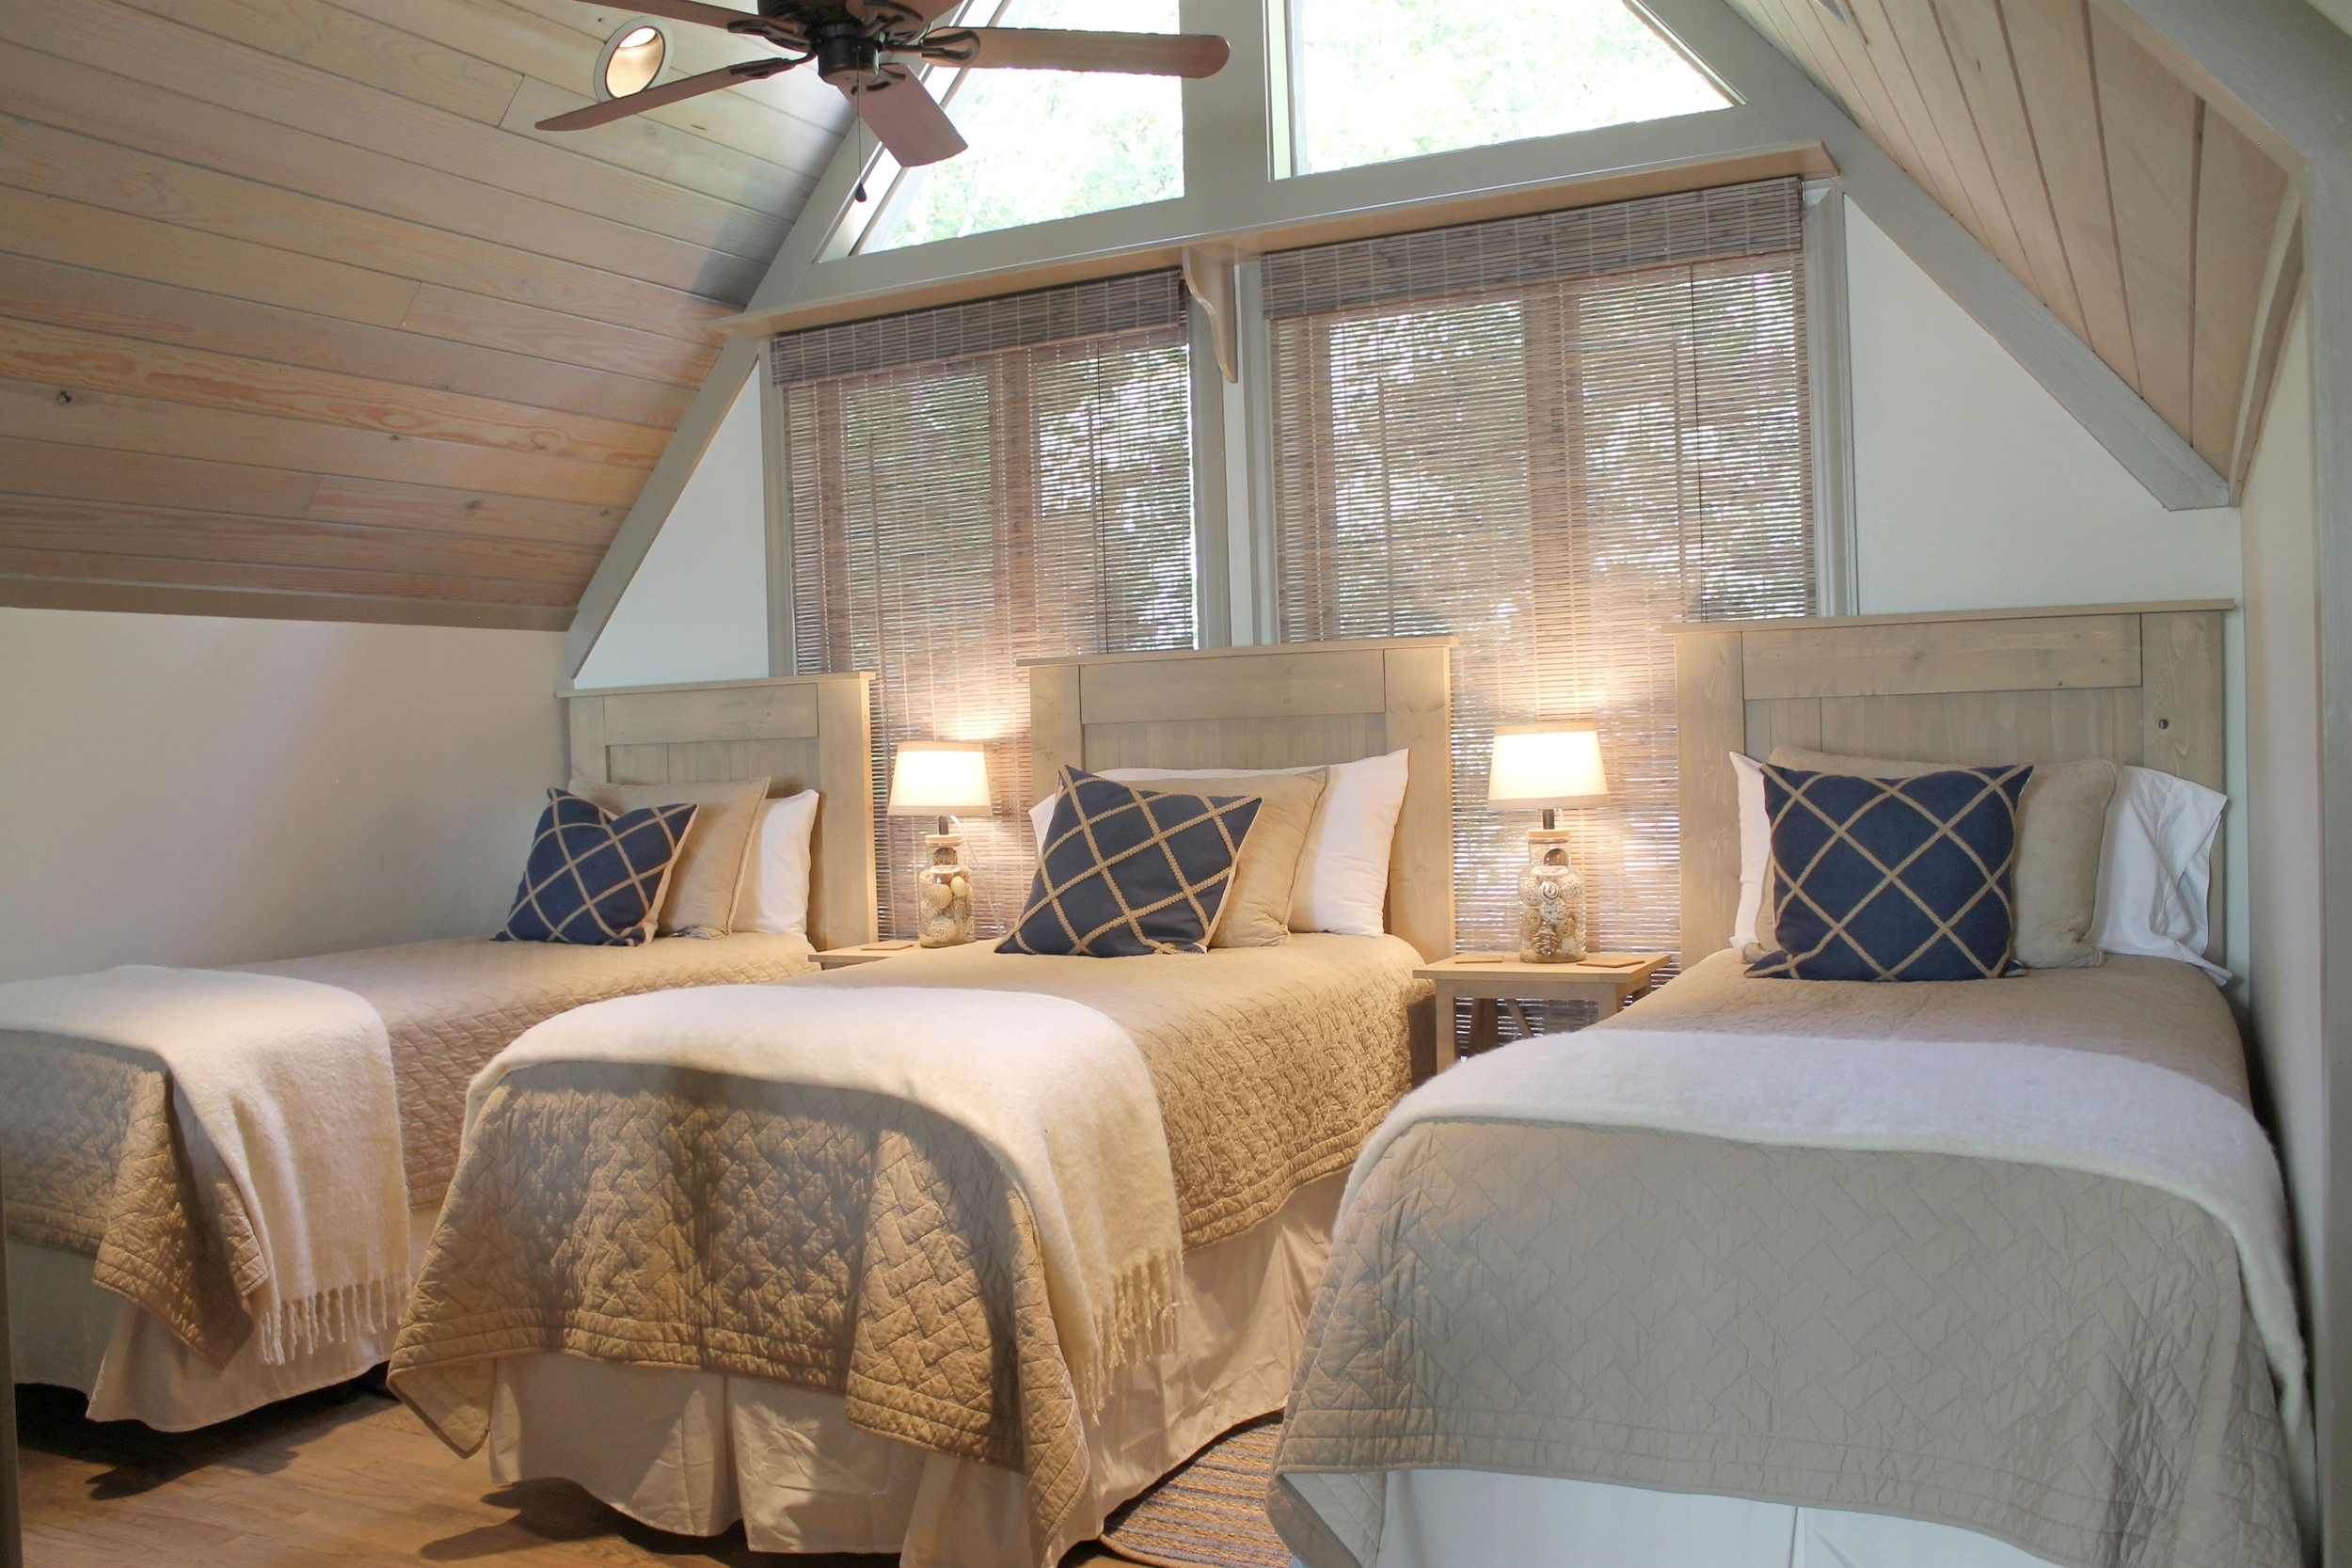 Prime Design Memphis, LLC - Arkansas Lake House, Loft, Twin Beds, Vaulted Rustic Ceiling